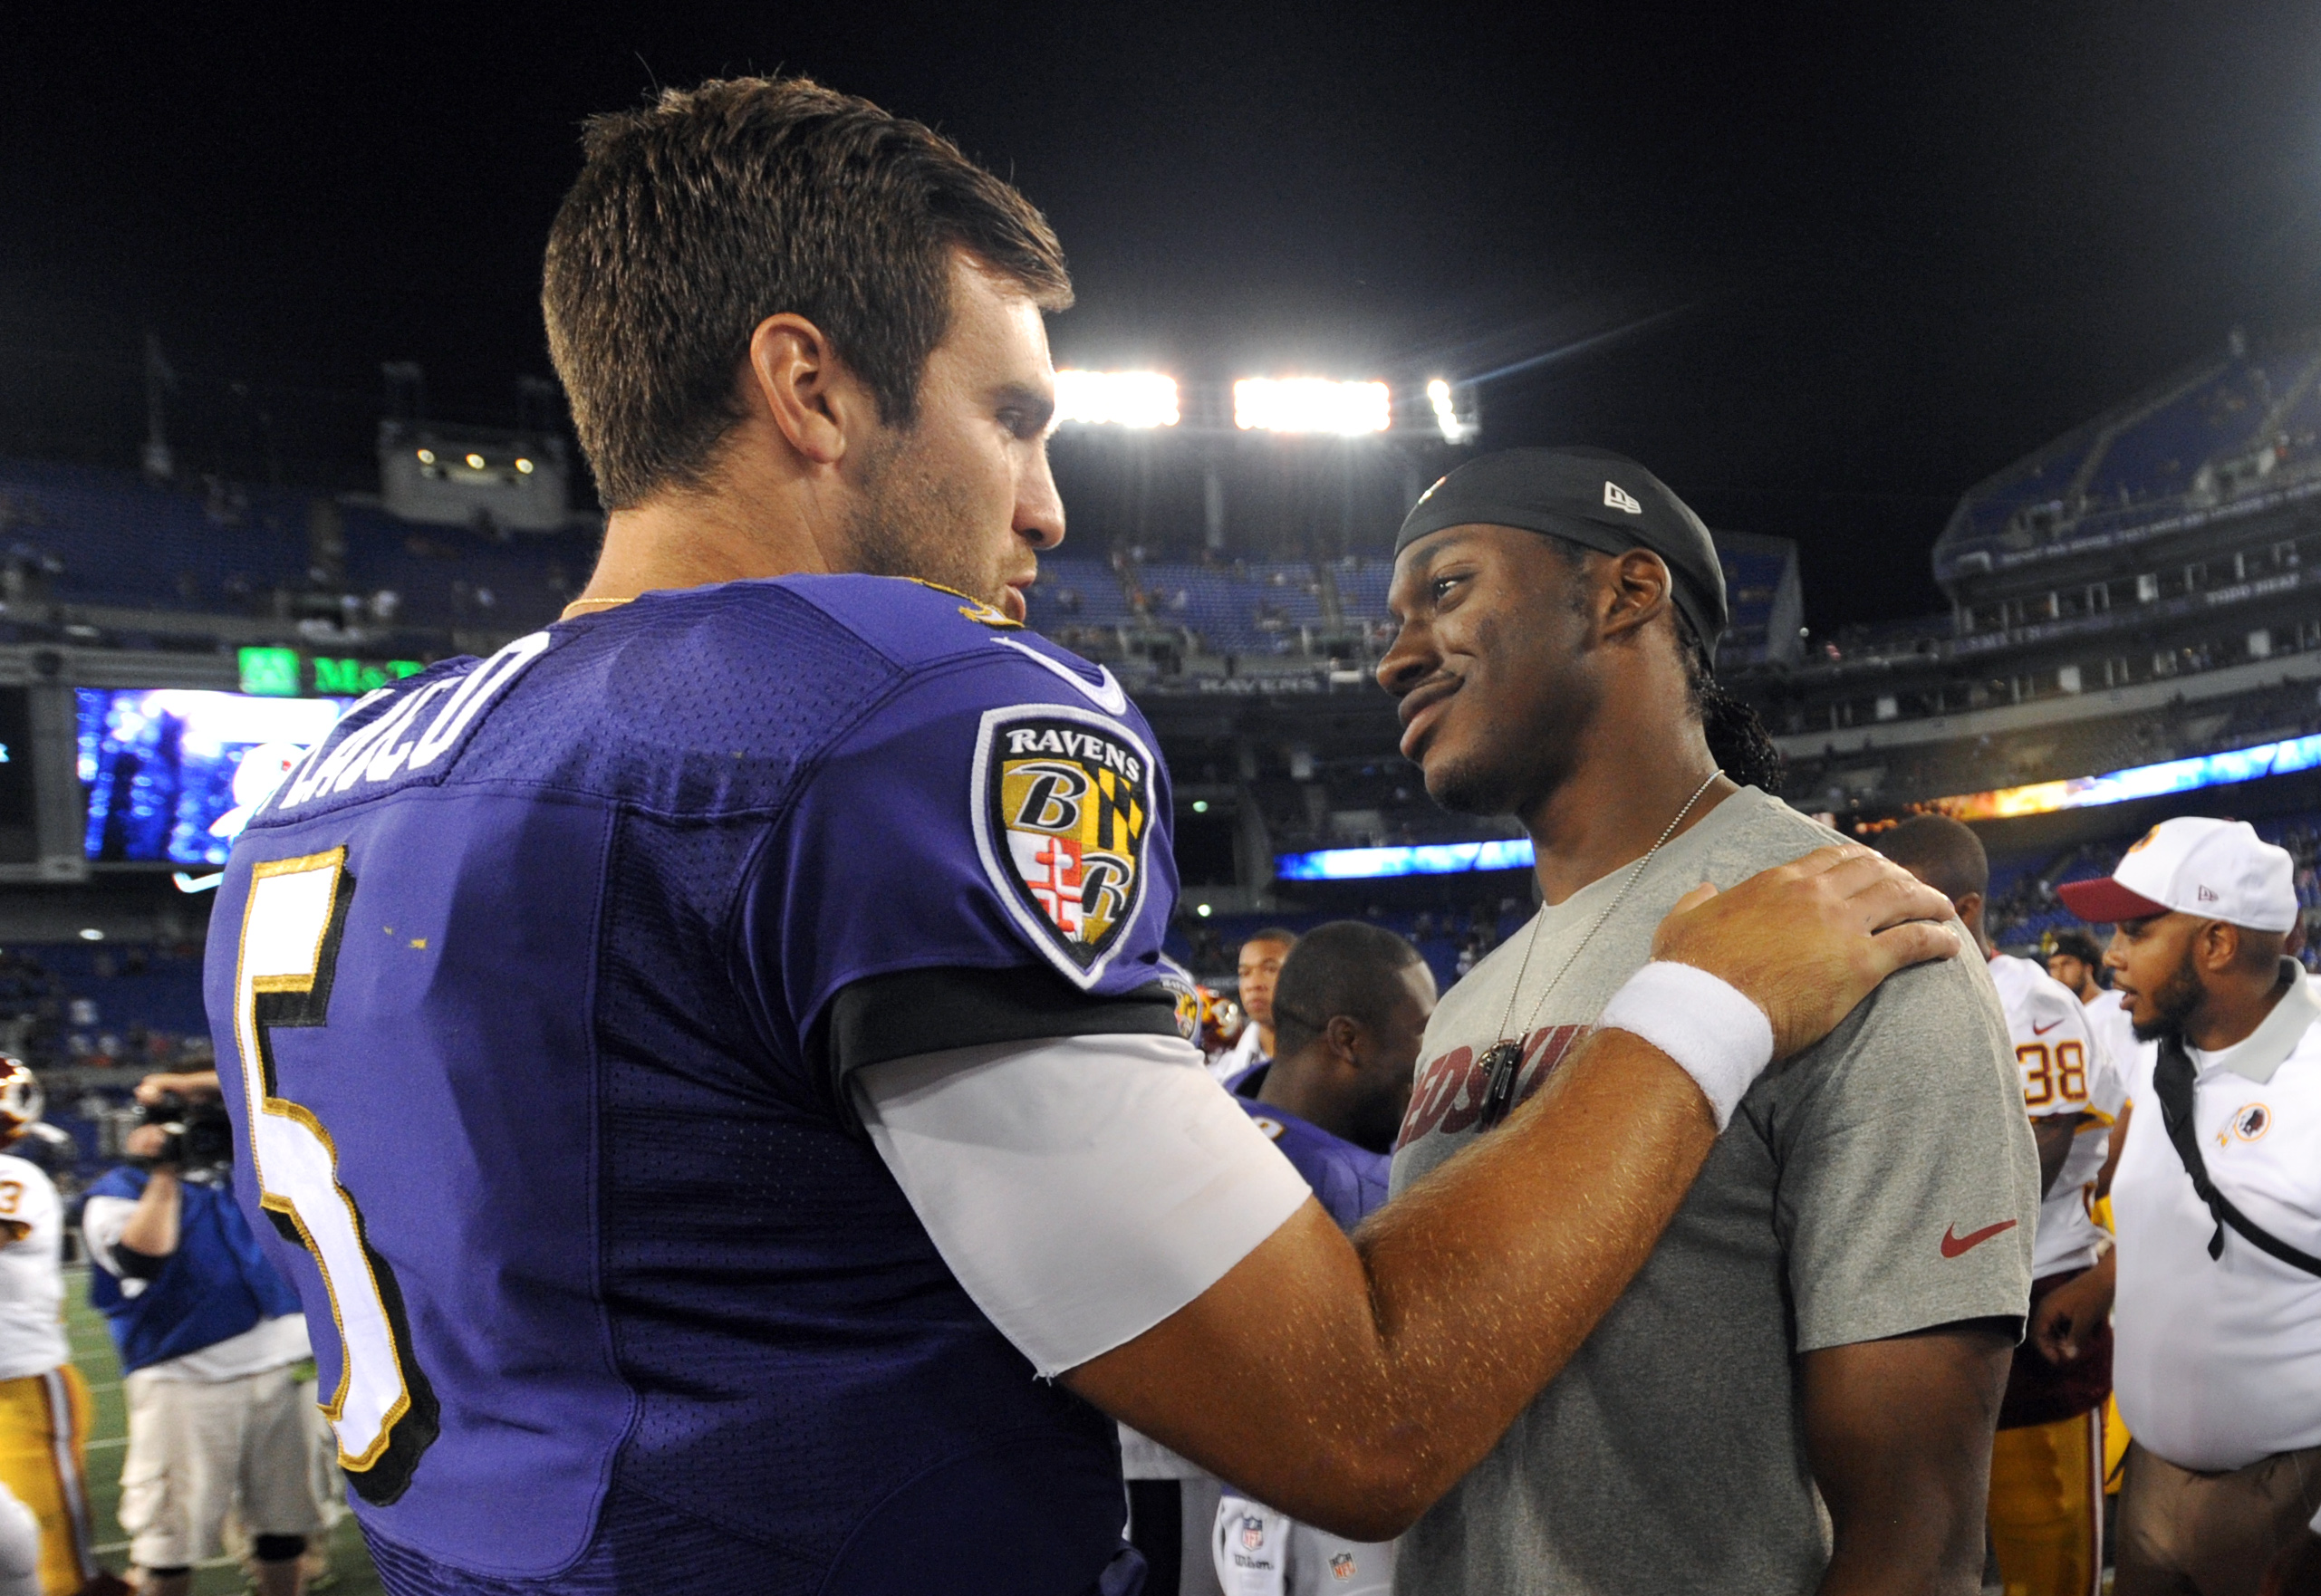 Baltimore Ravens quarterback Joe Flacco, left, chats with Washington Redskins quarterback Robert Griffin III after a preseason NFL football game, Saturday, Aug. 29, 2015, in Baltimore. (AP Photo/Gail Burton)